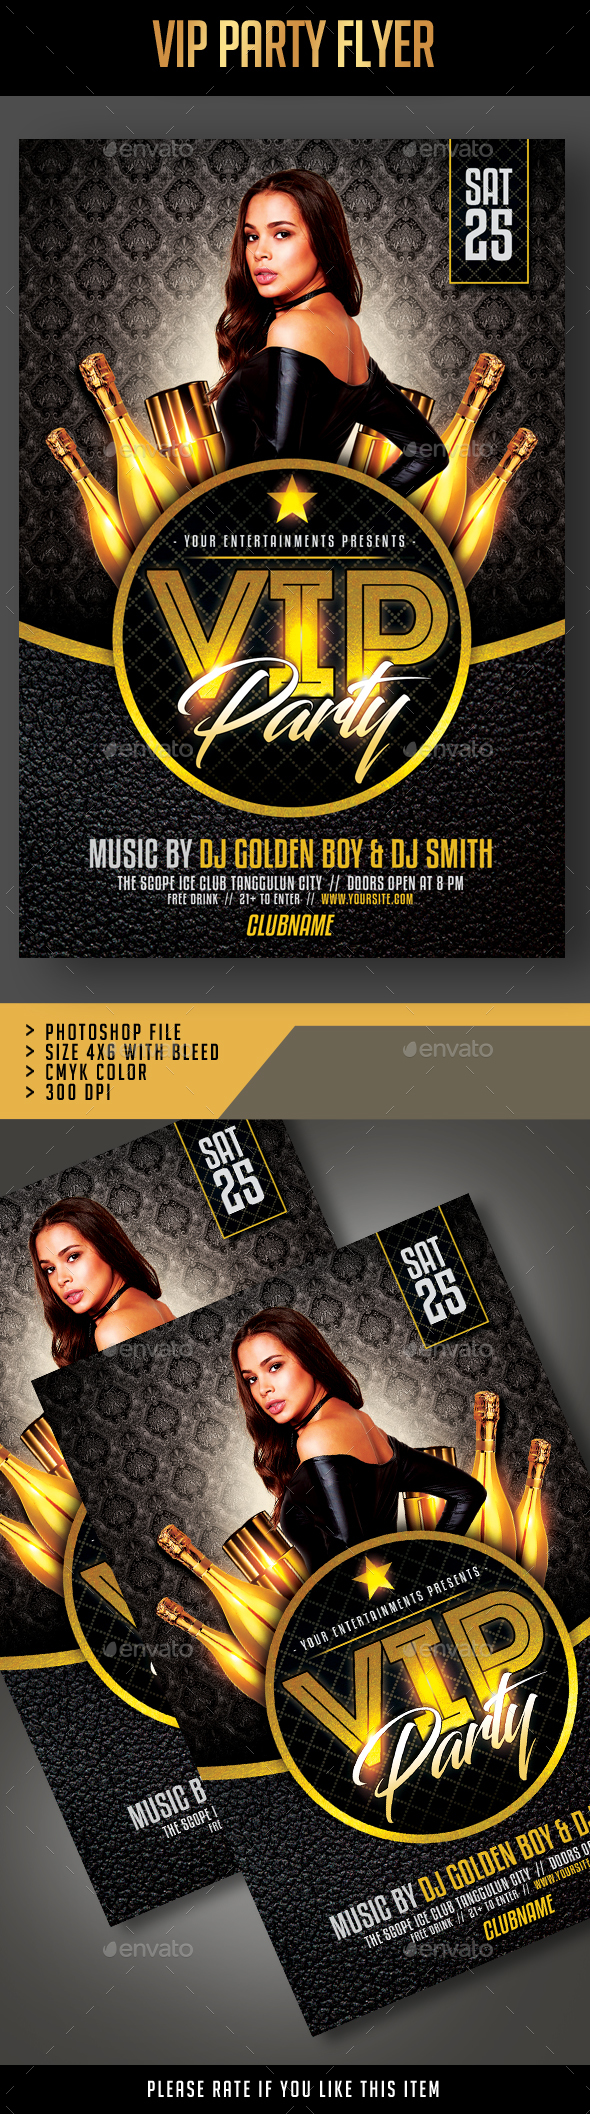 GraphicRiver Vip Party Flyer 21158542